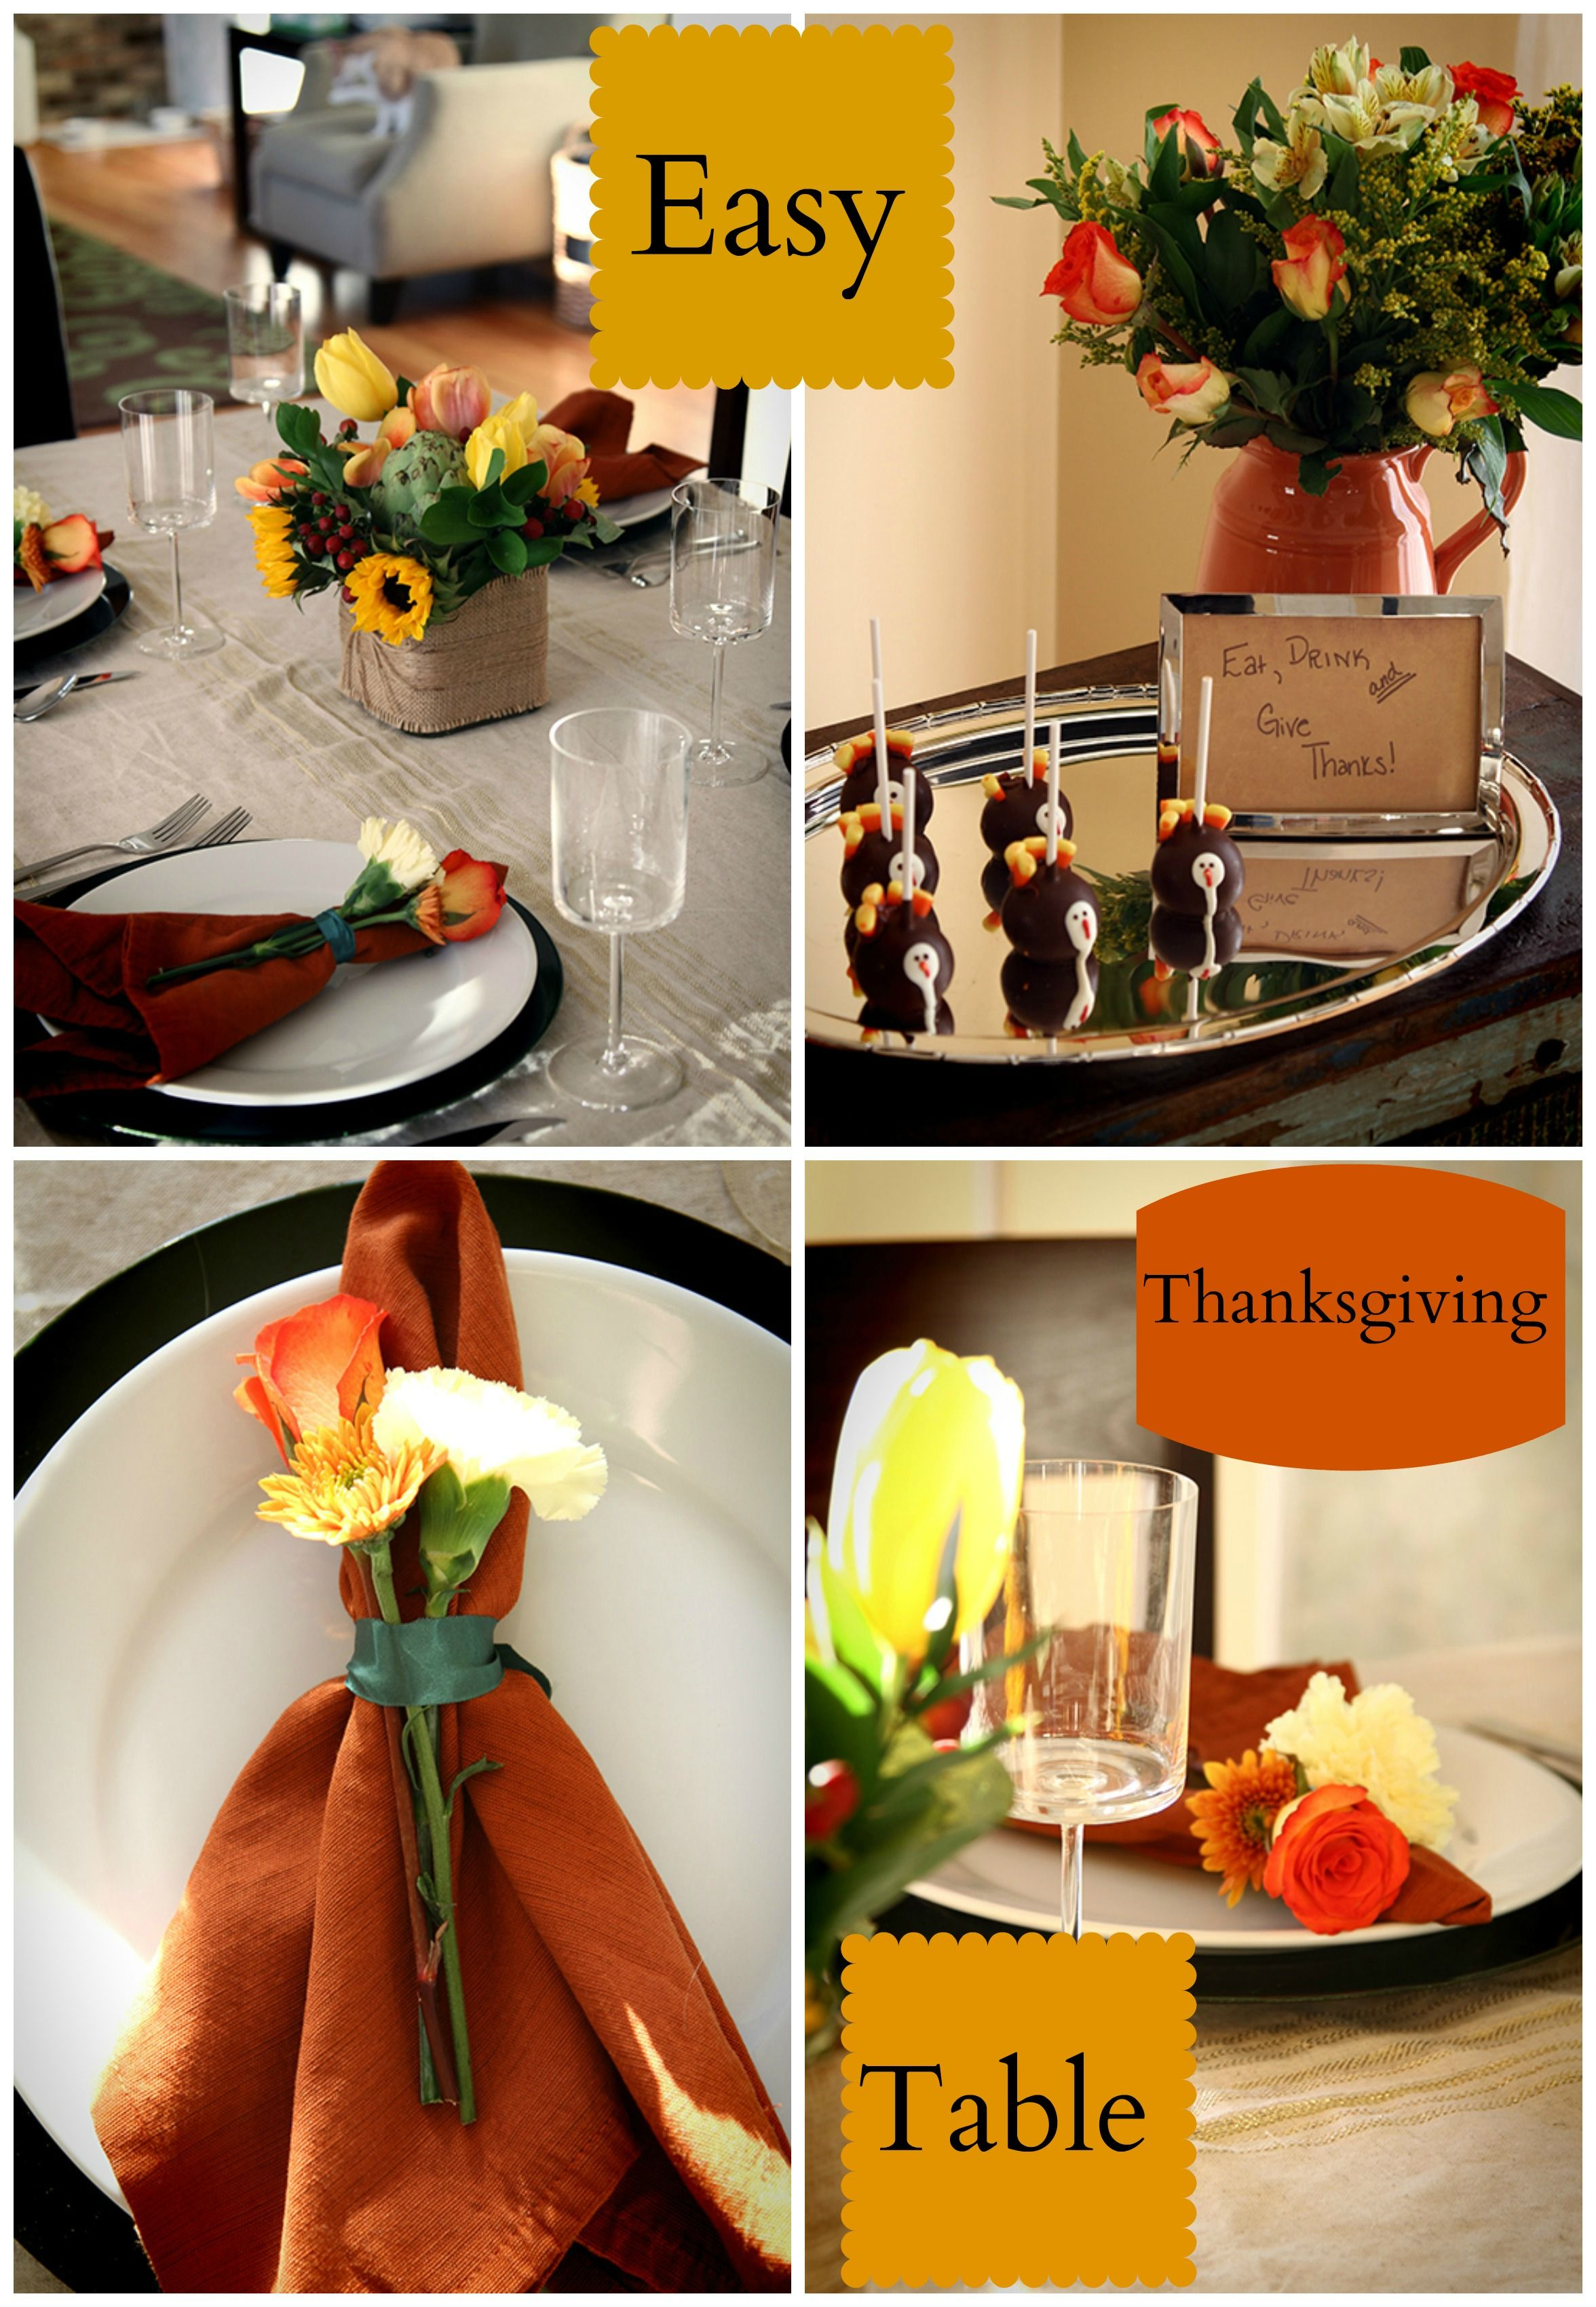 Easy Thanksgiving Table